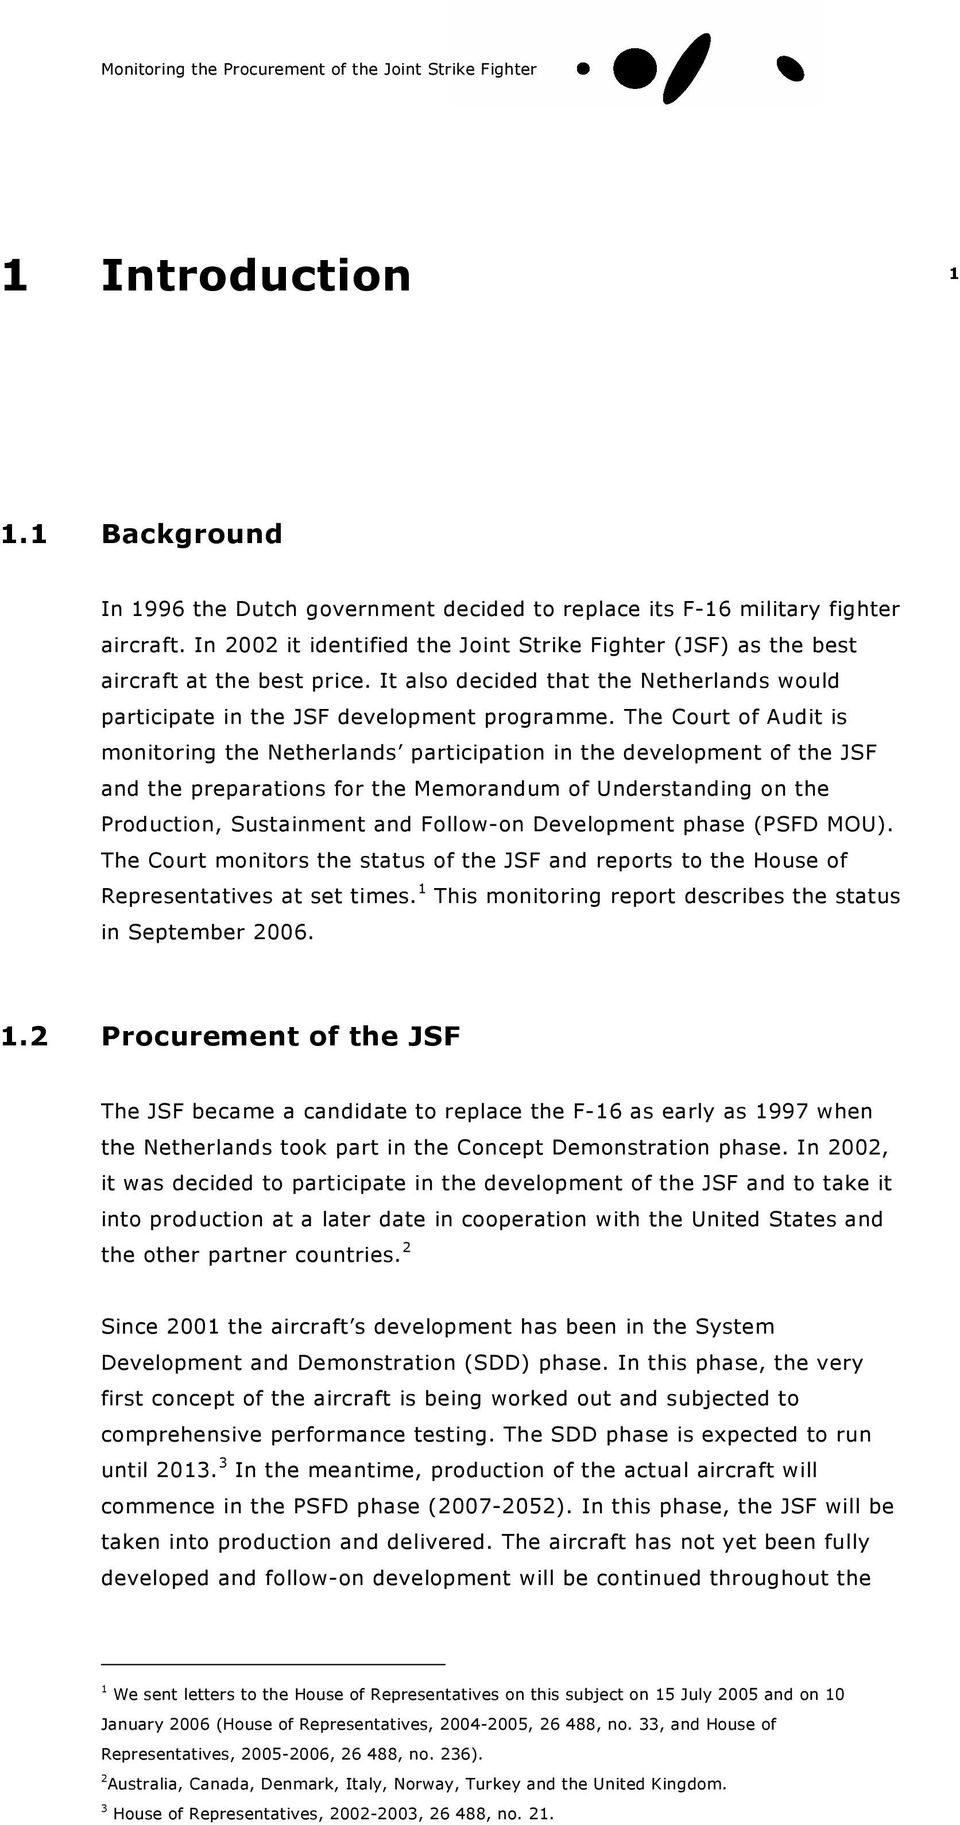 The Court of Audit is monitoring the Netherlands participation in the development of the JSF and the preparations for the Memorandum of Understanding on the Production, Sustainment and Follow-on